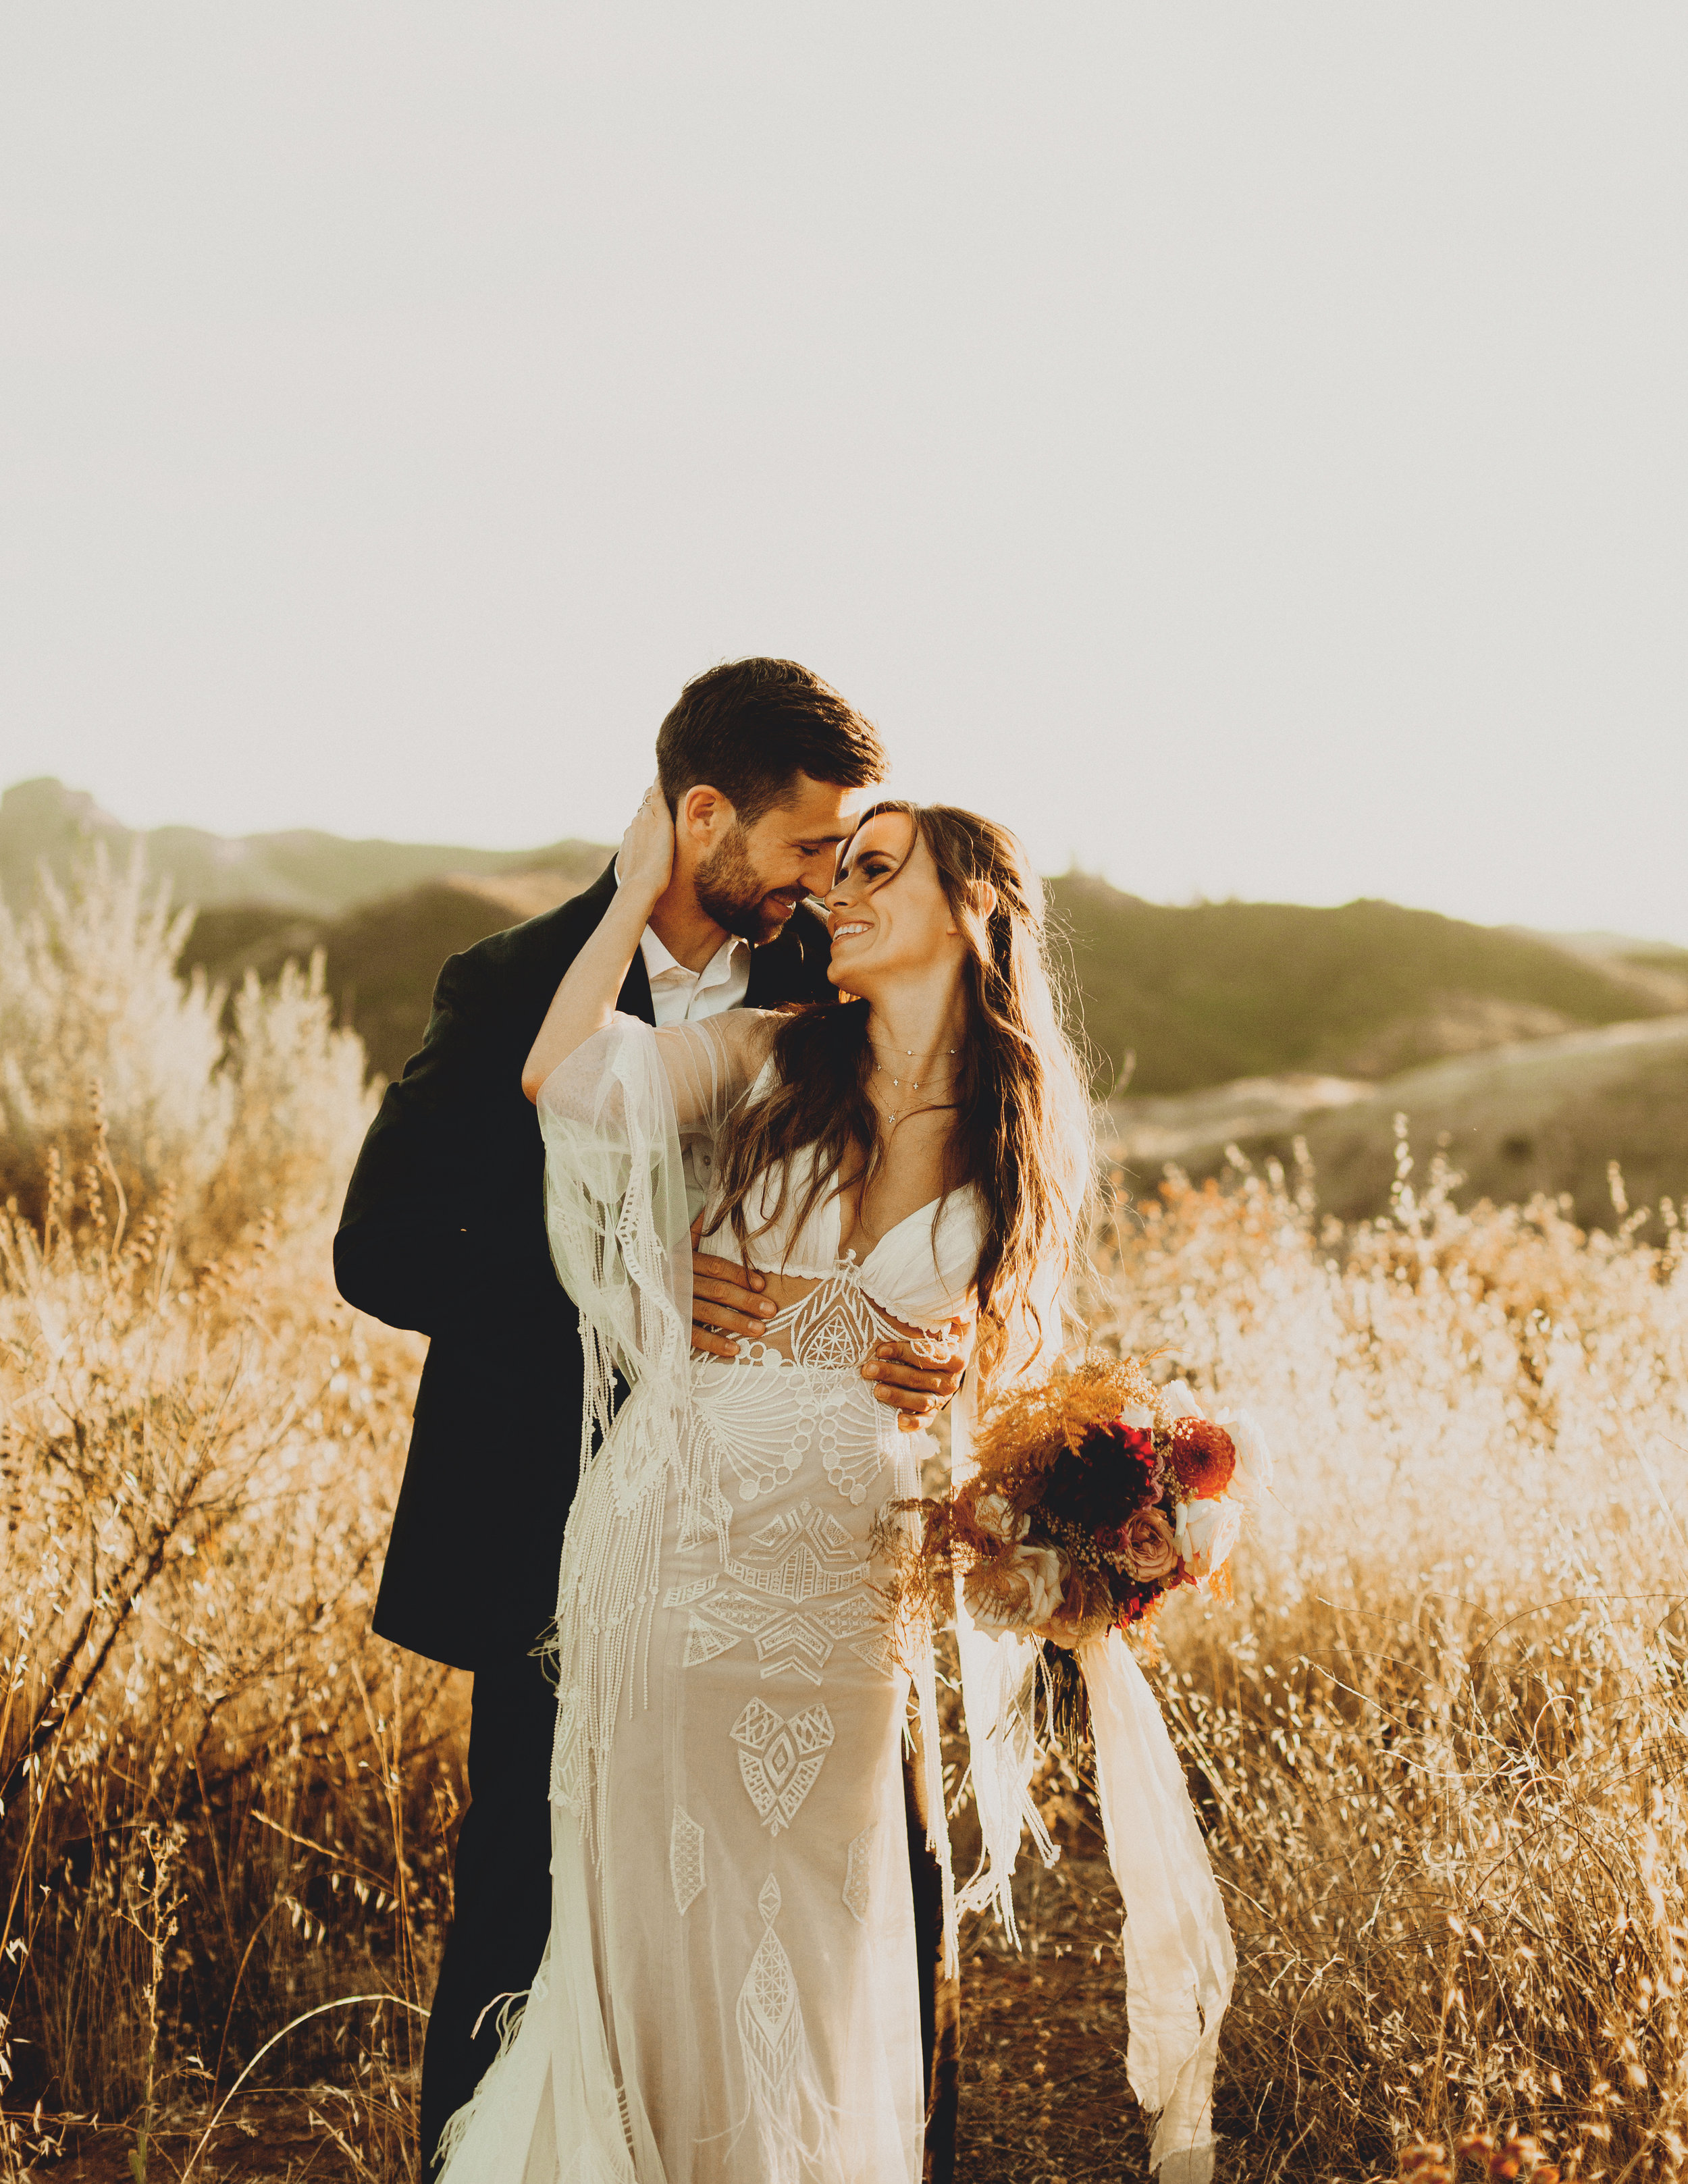 -California_Elopement_NellyCabanillas_Photography9740copy.jpg